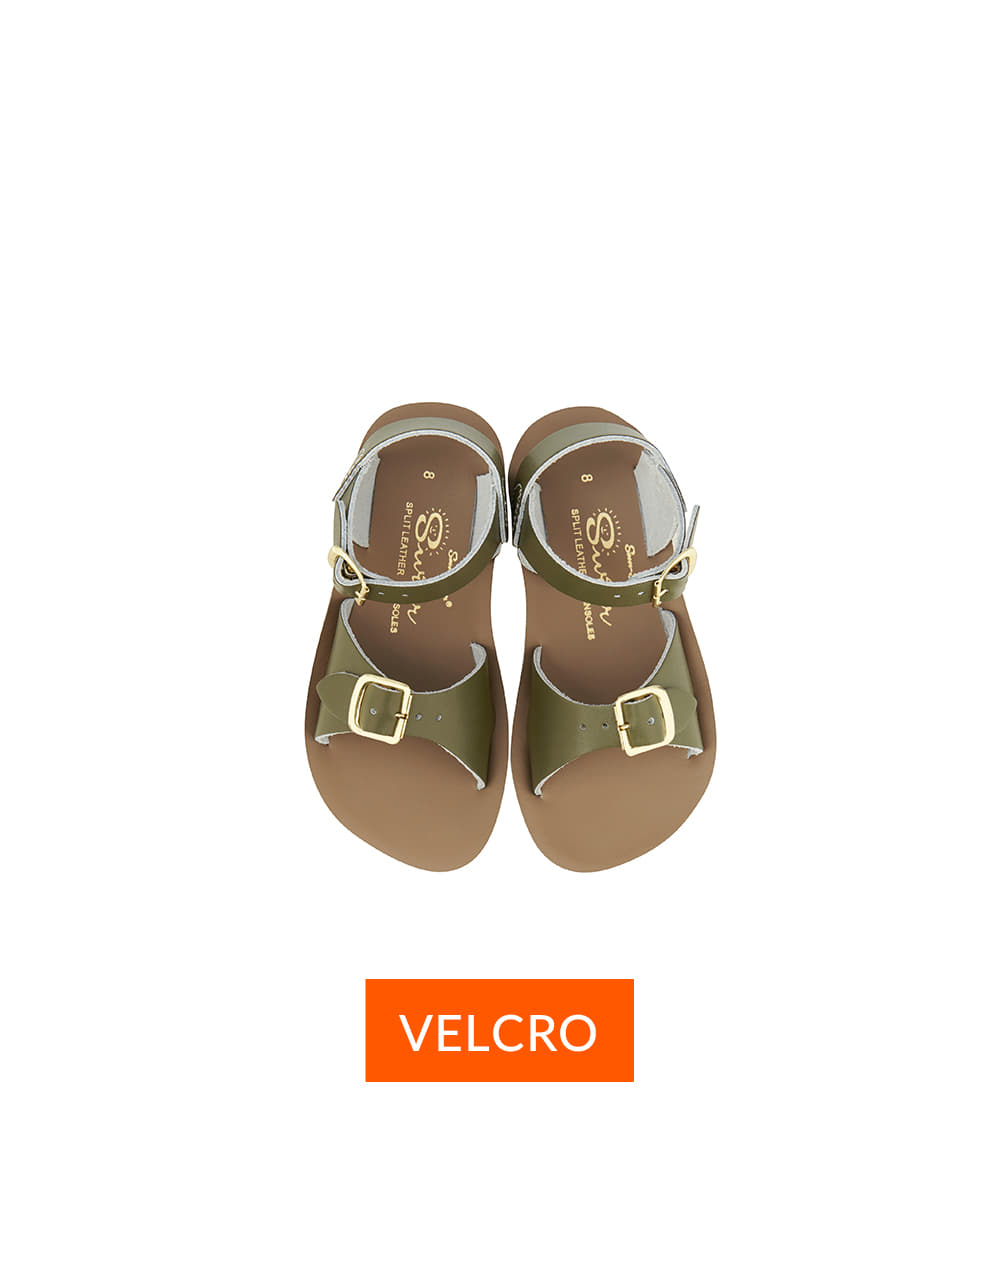 SALT-WATER SANDAL CHILD VELCRO SURFER  Olive